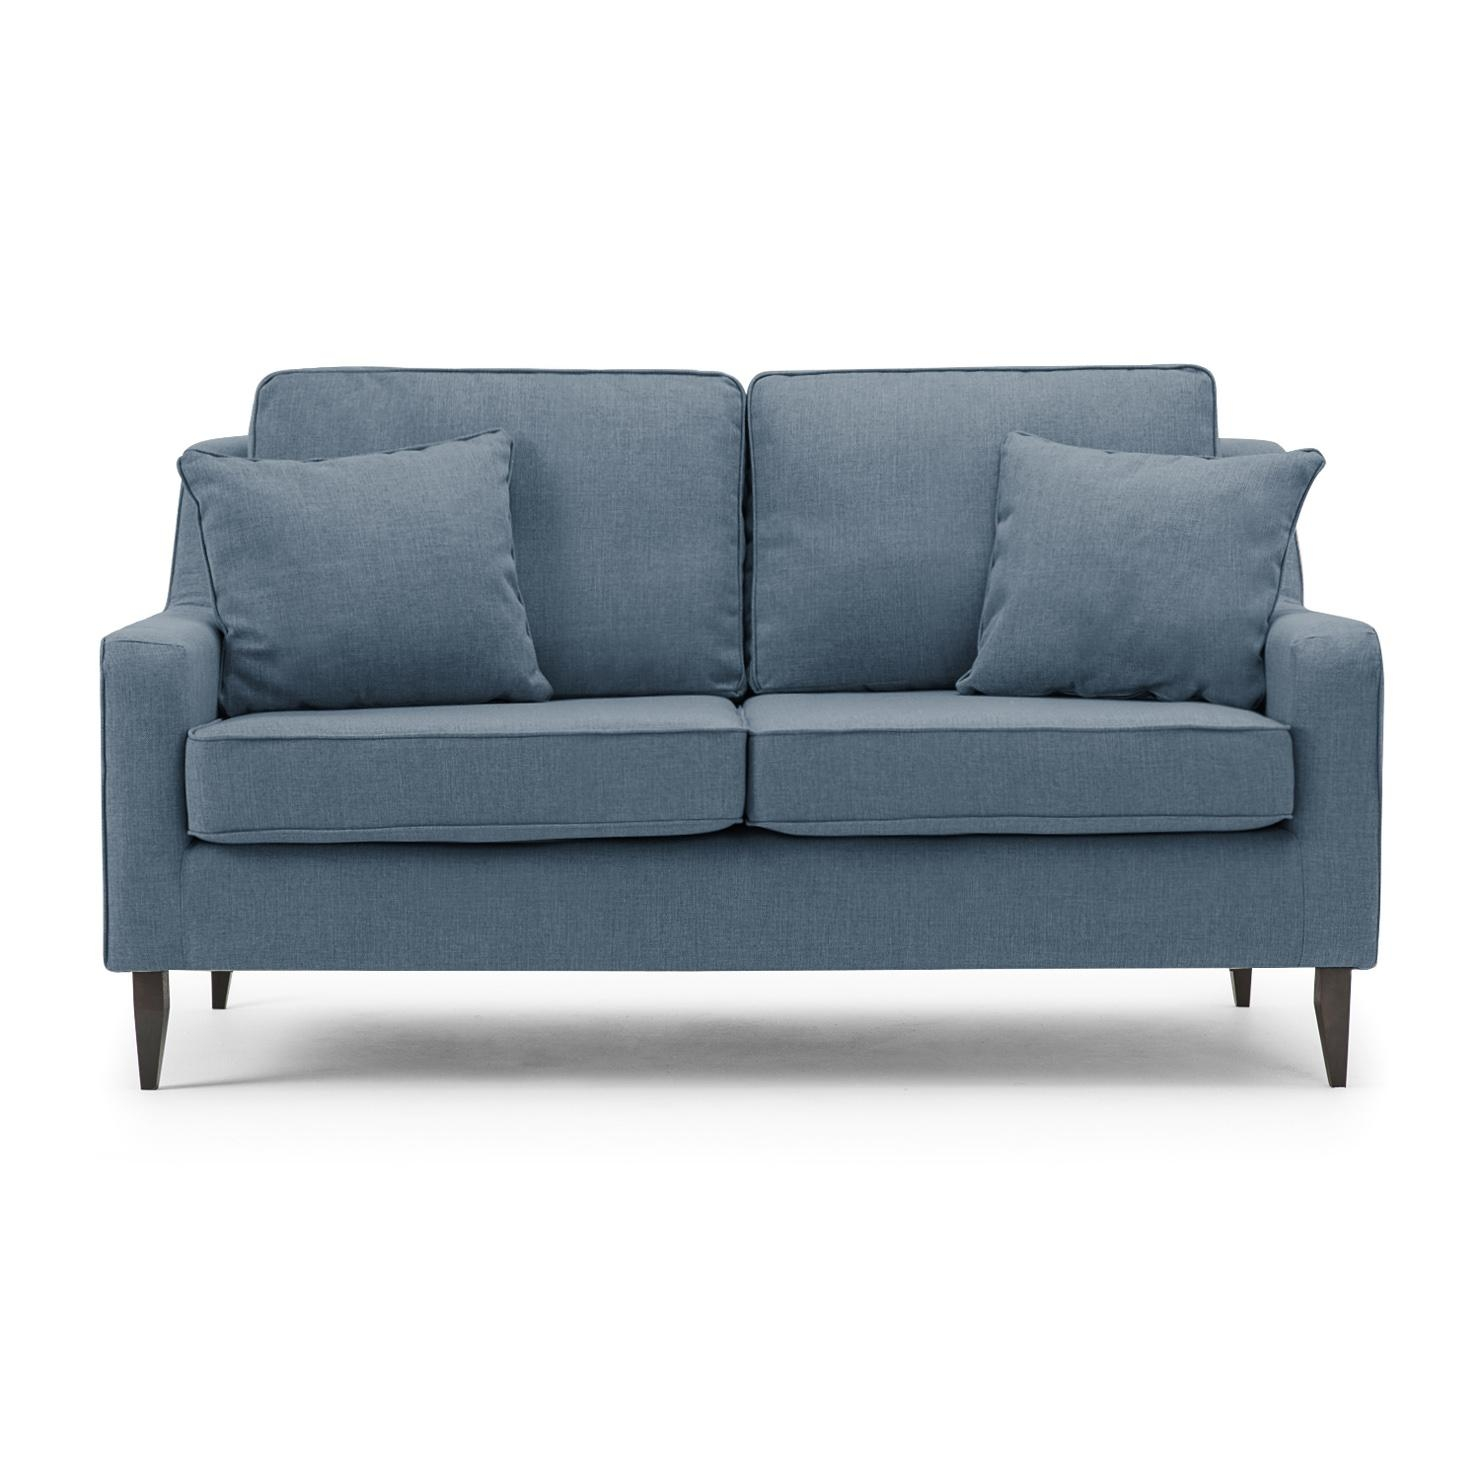 Blue Grey Sofa Bello Modern 3 Seat Sofa Blue Grey – Gallery Image Within Blue Grey Sofas (Image 4 of 20)